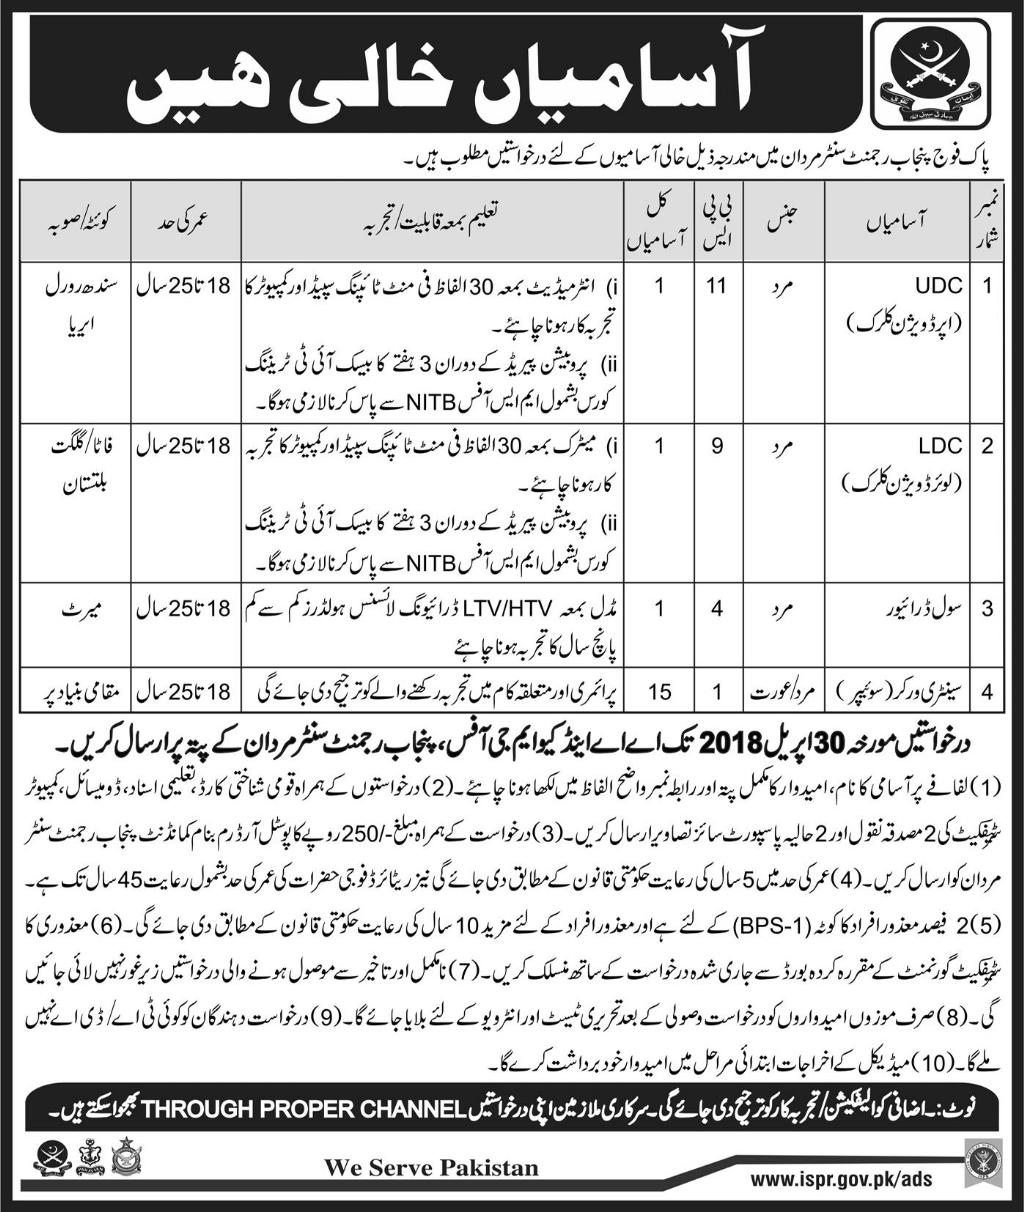 Pakistan Army Punjab Rajment Center Mardan Jobs